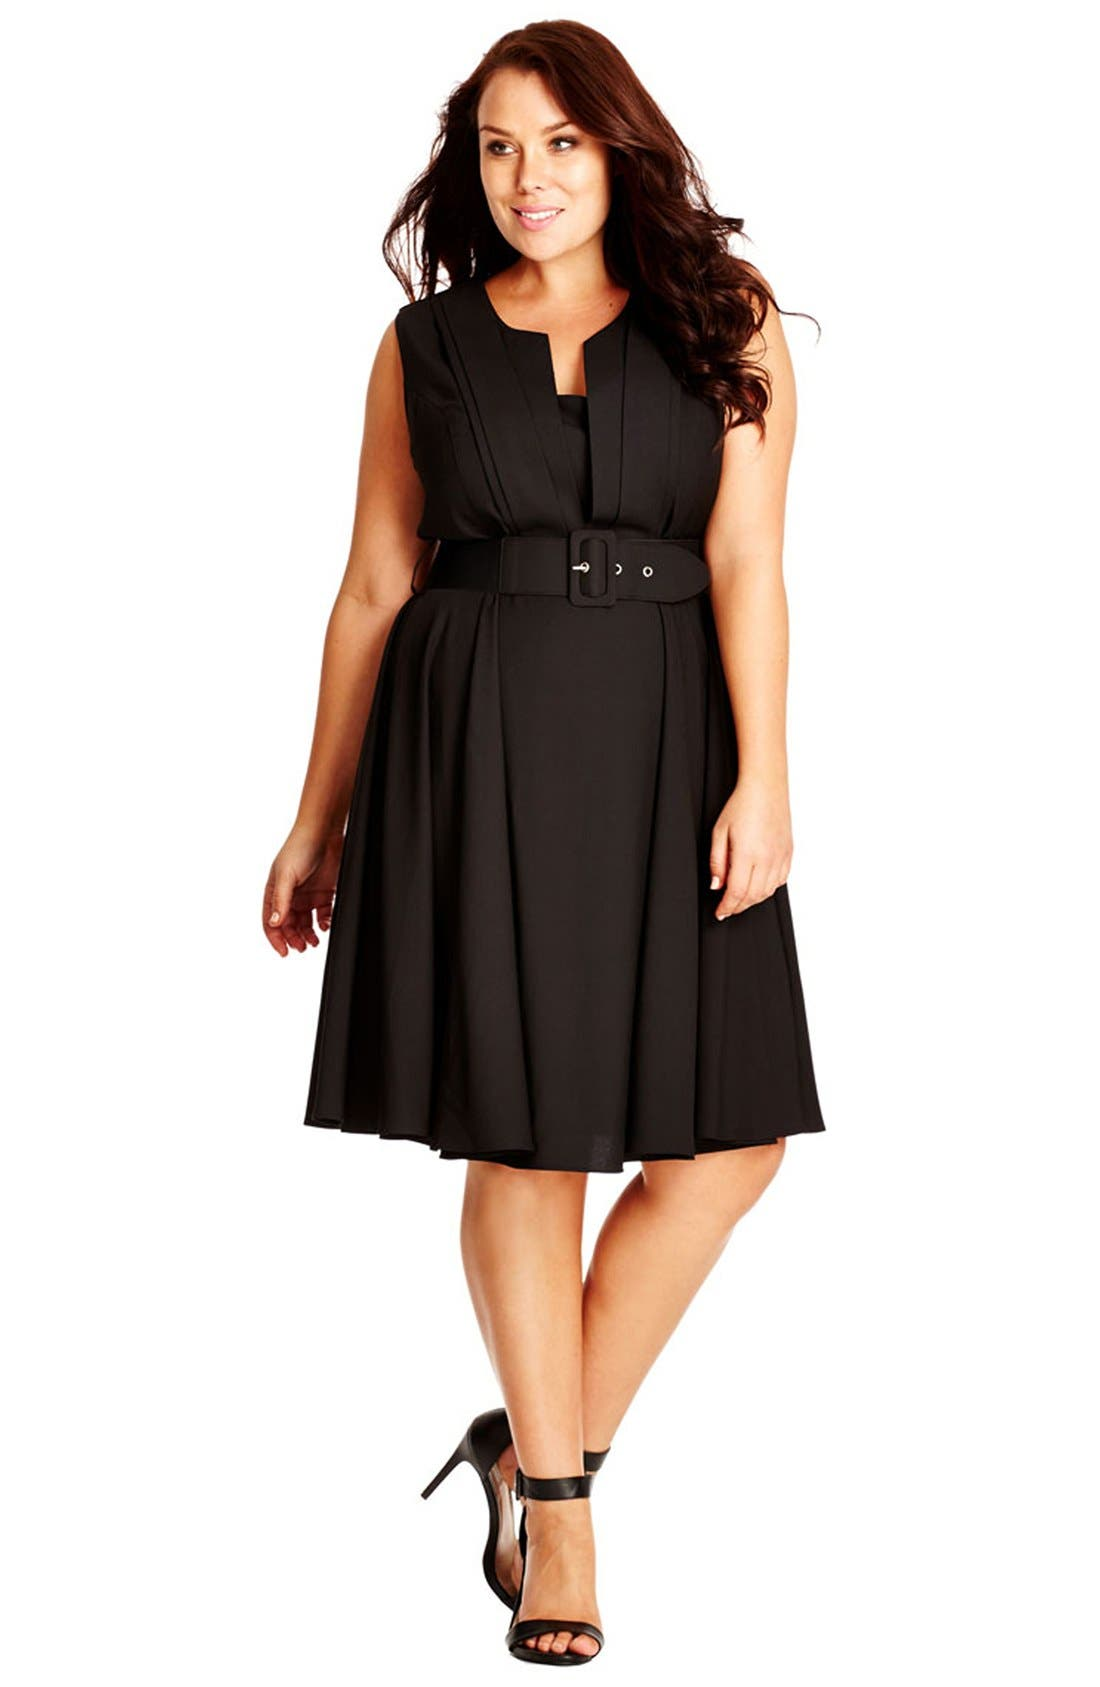 CITY CHIC 'Vintage Veroni' Fit & Fare Dress